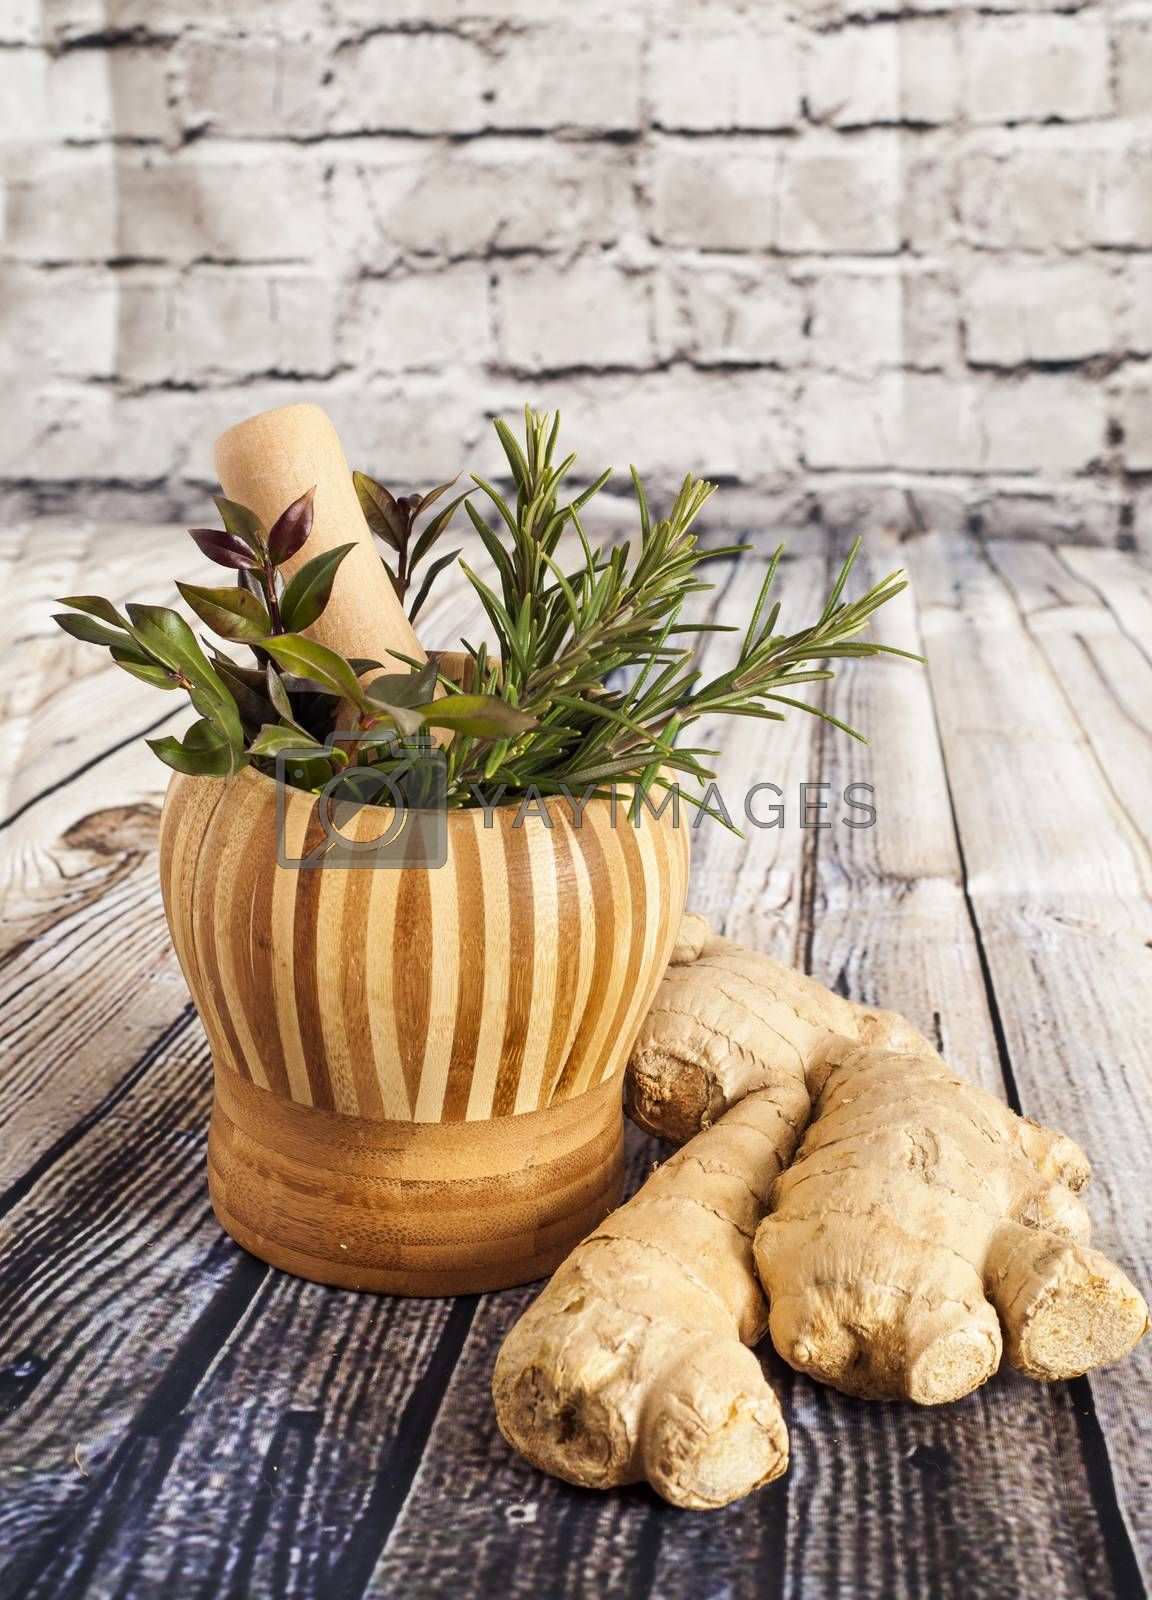 Ginger and herbs on a wooden board